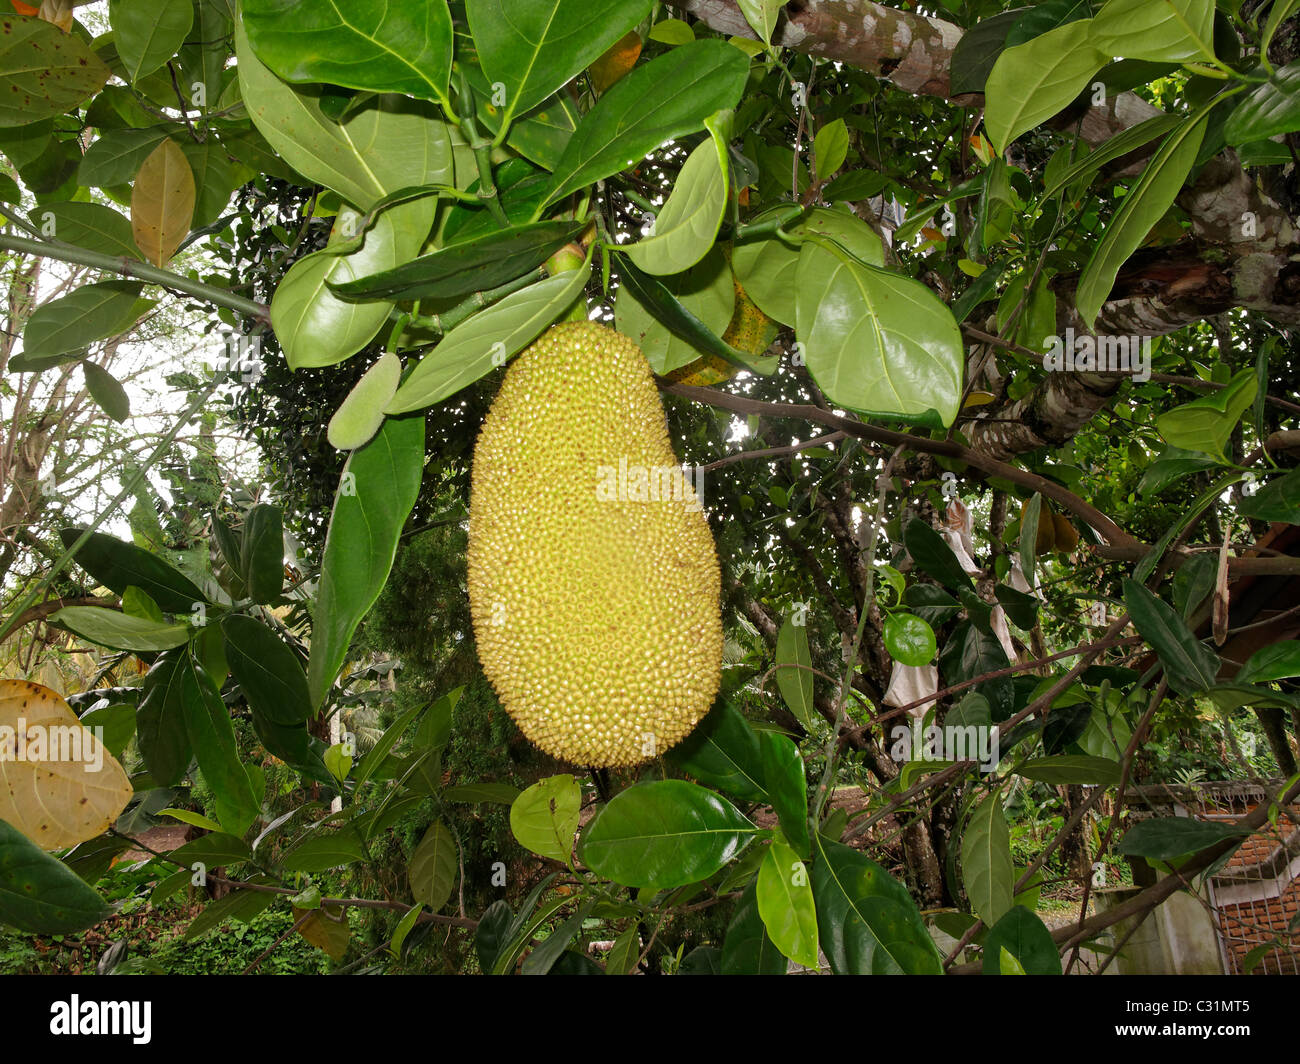 jackfruit largest tree borne fruit An official announcement on giving the largest tree borne fruit that is known   the aim is to promote the 'kerala jackfruit' as a brand in markets.